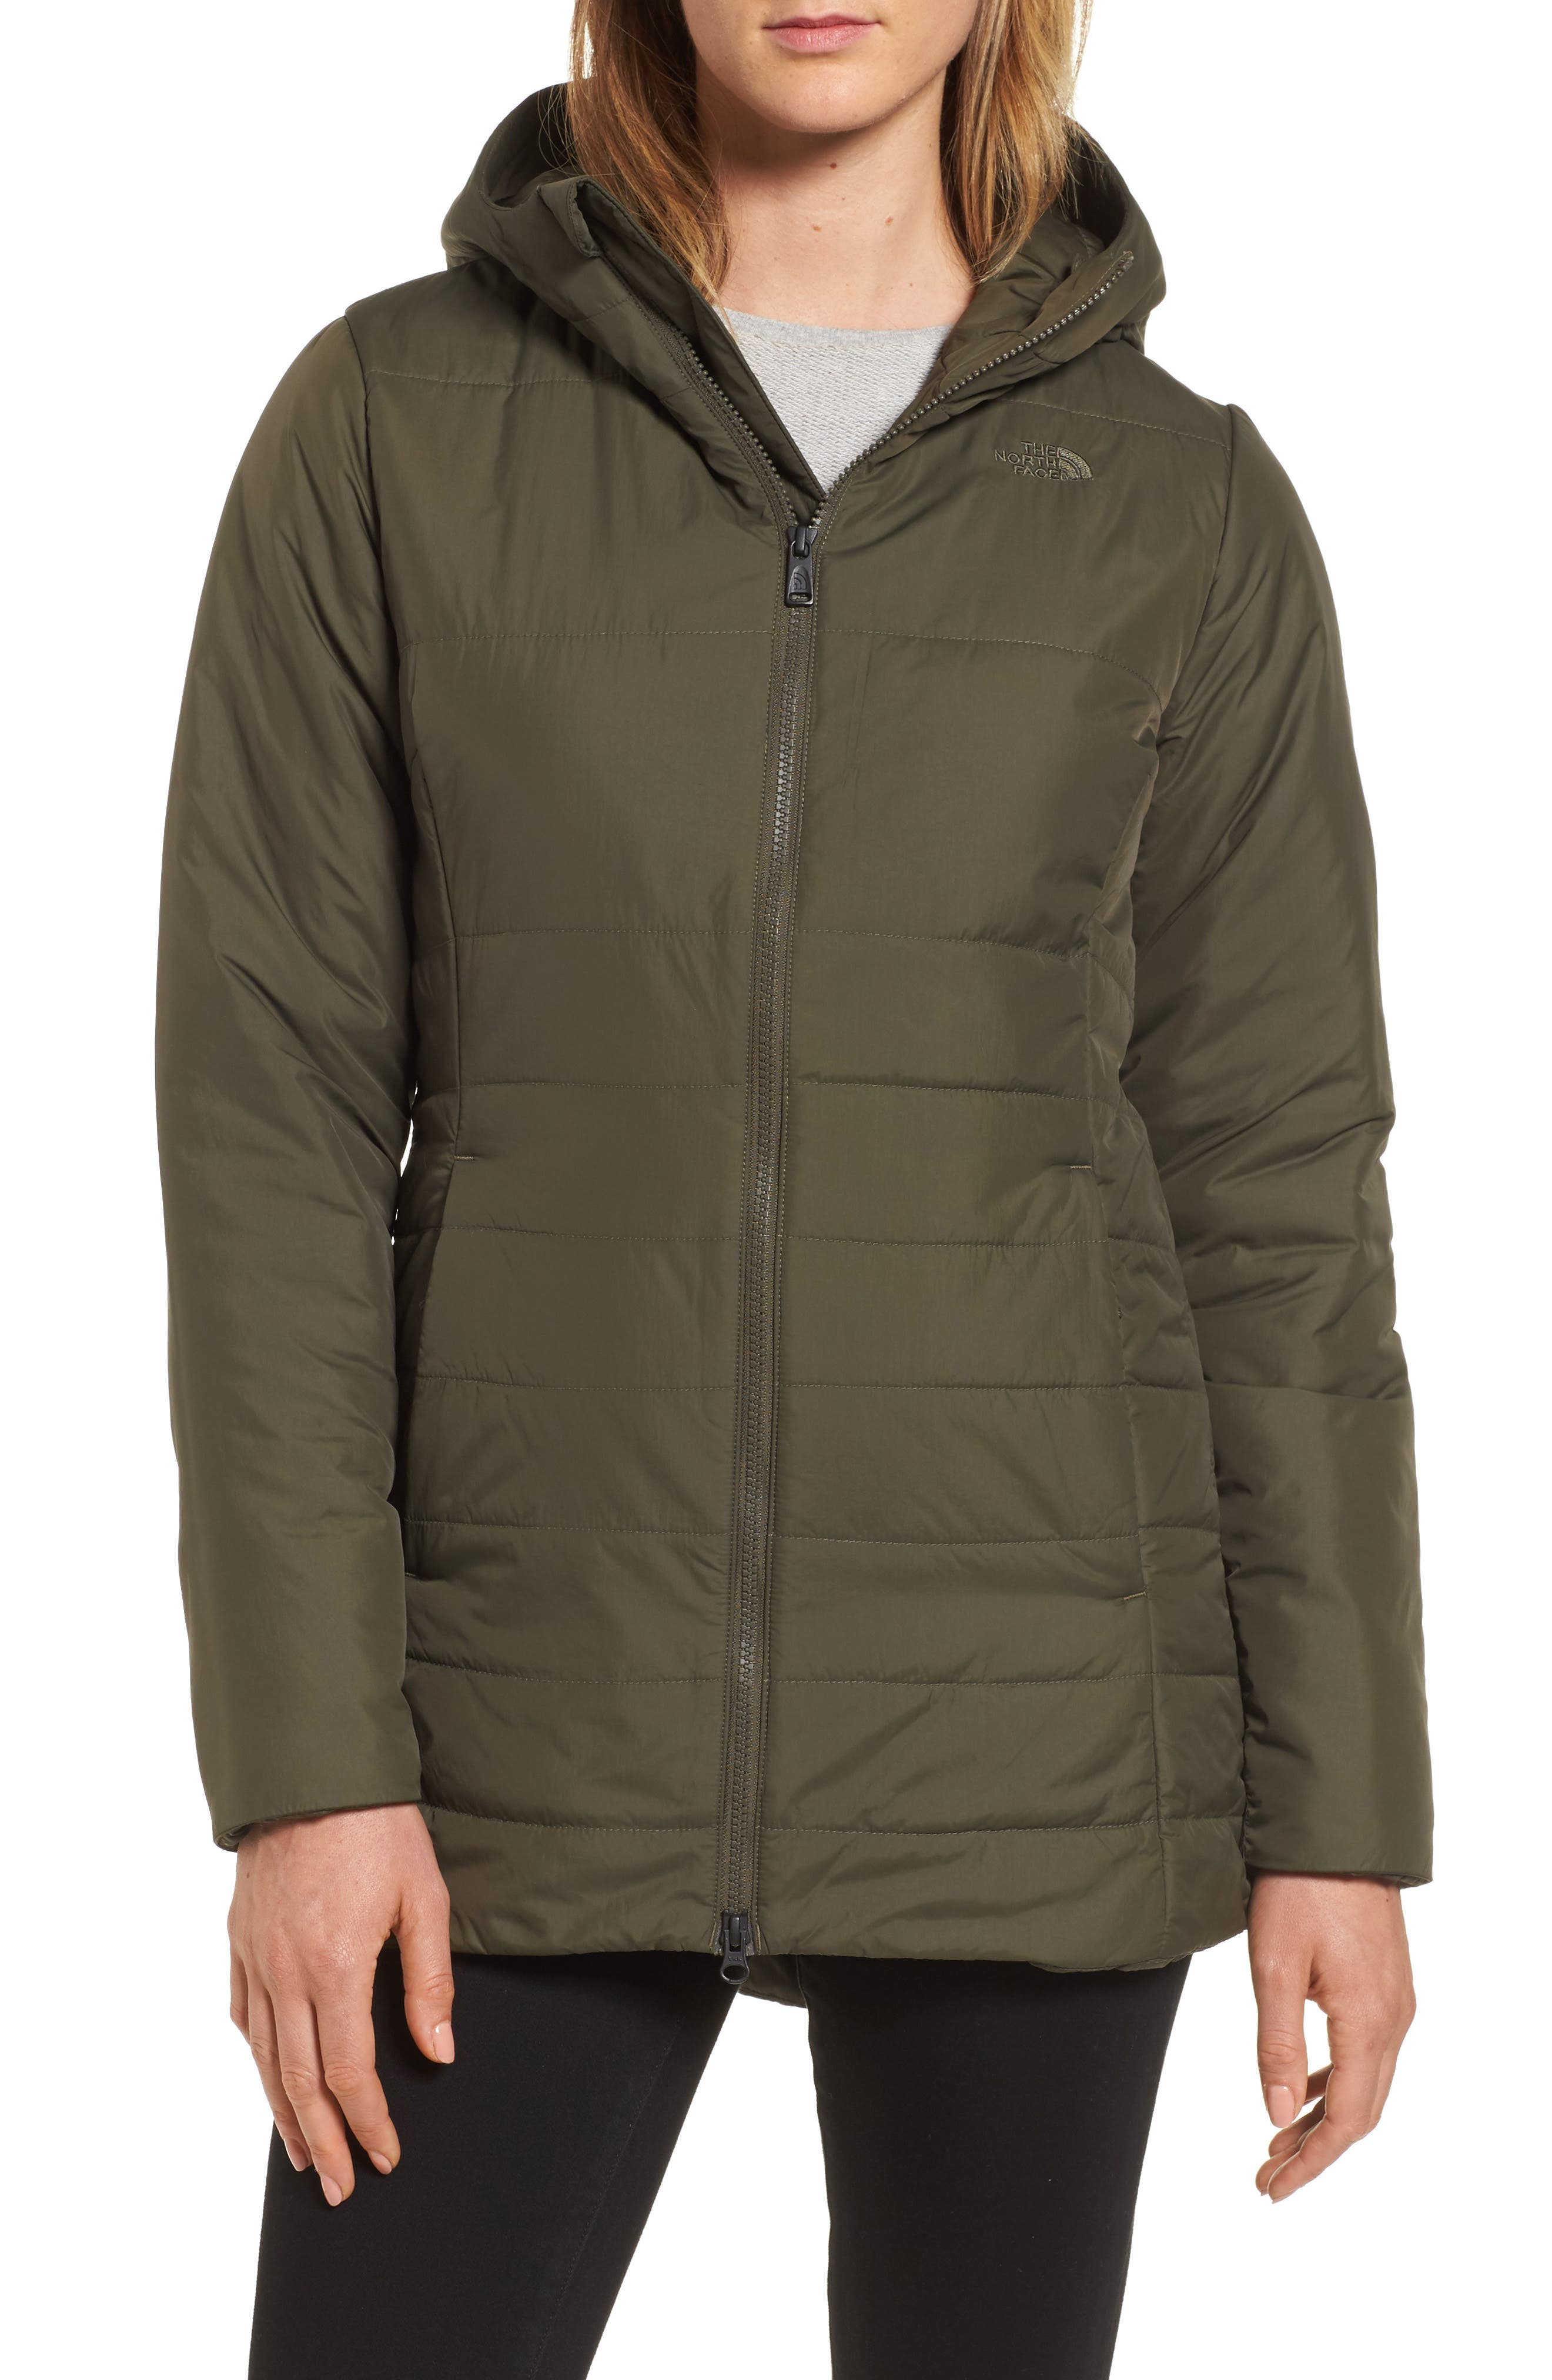 Harway Heatseeker<sup>™</sup> Water-Resistant Jacket with Faux Fur Trim,                             Alternate thumbnail 4, color,                             New Taupe Green